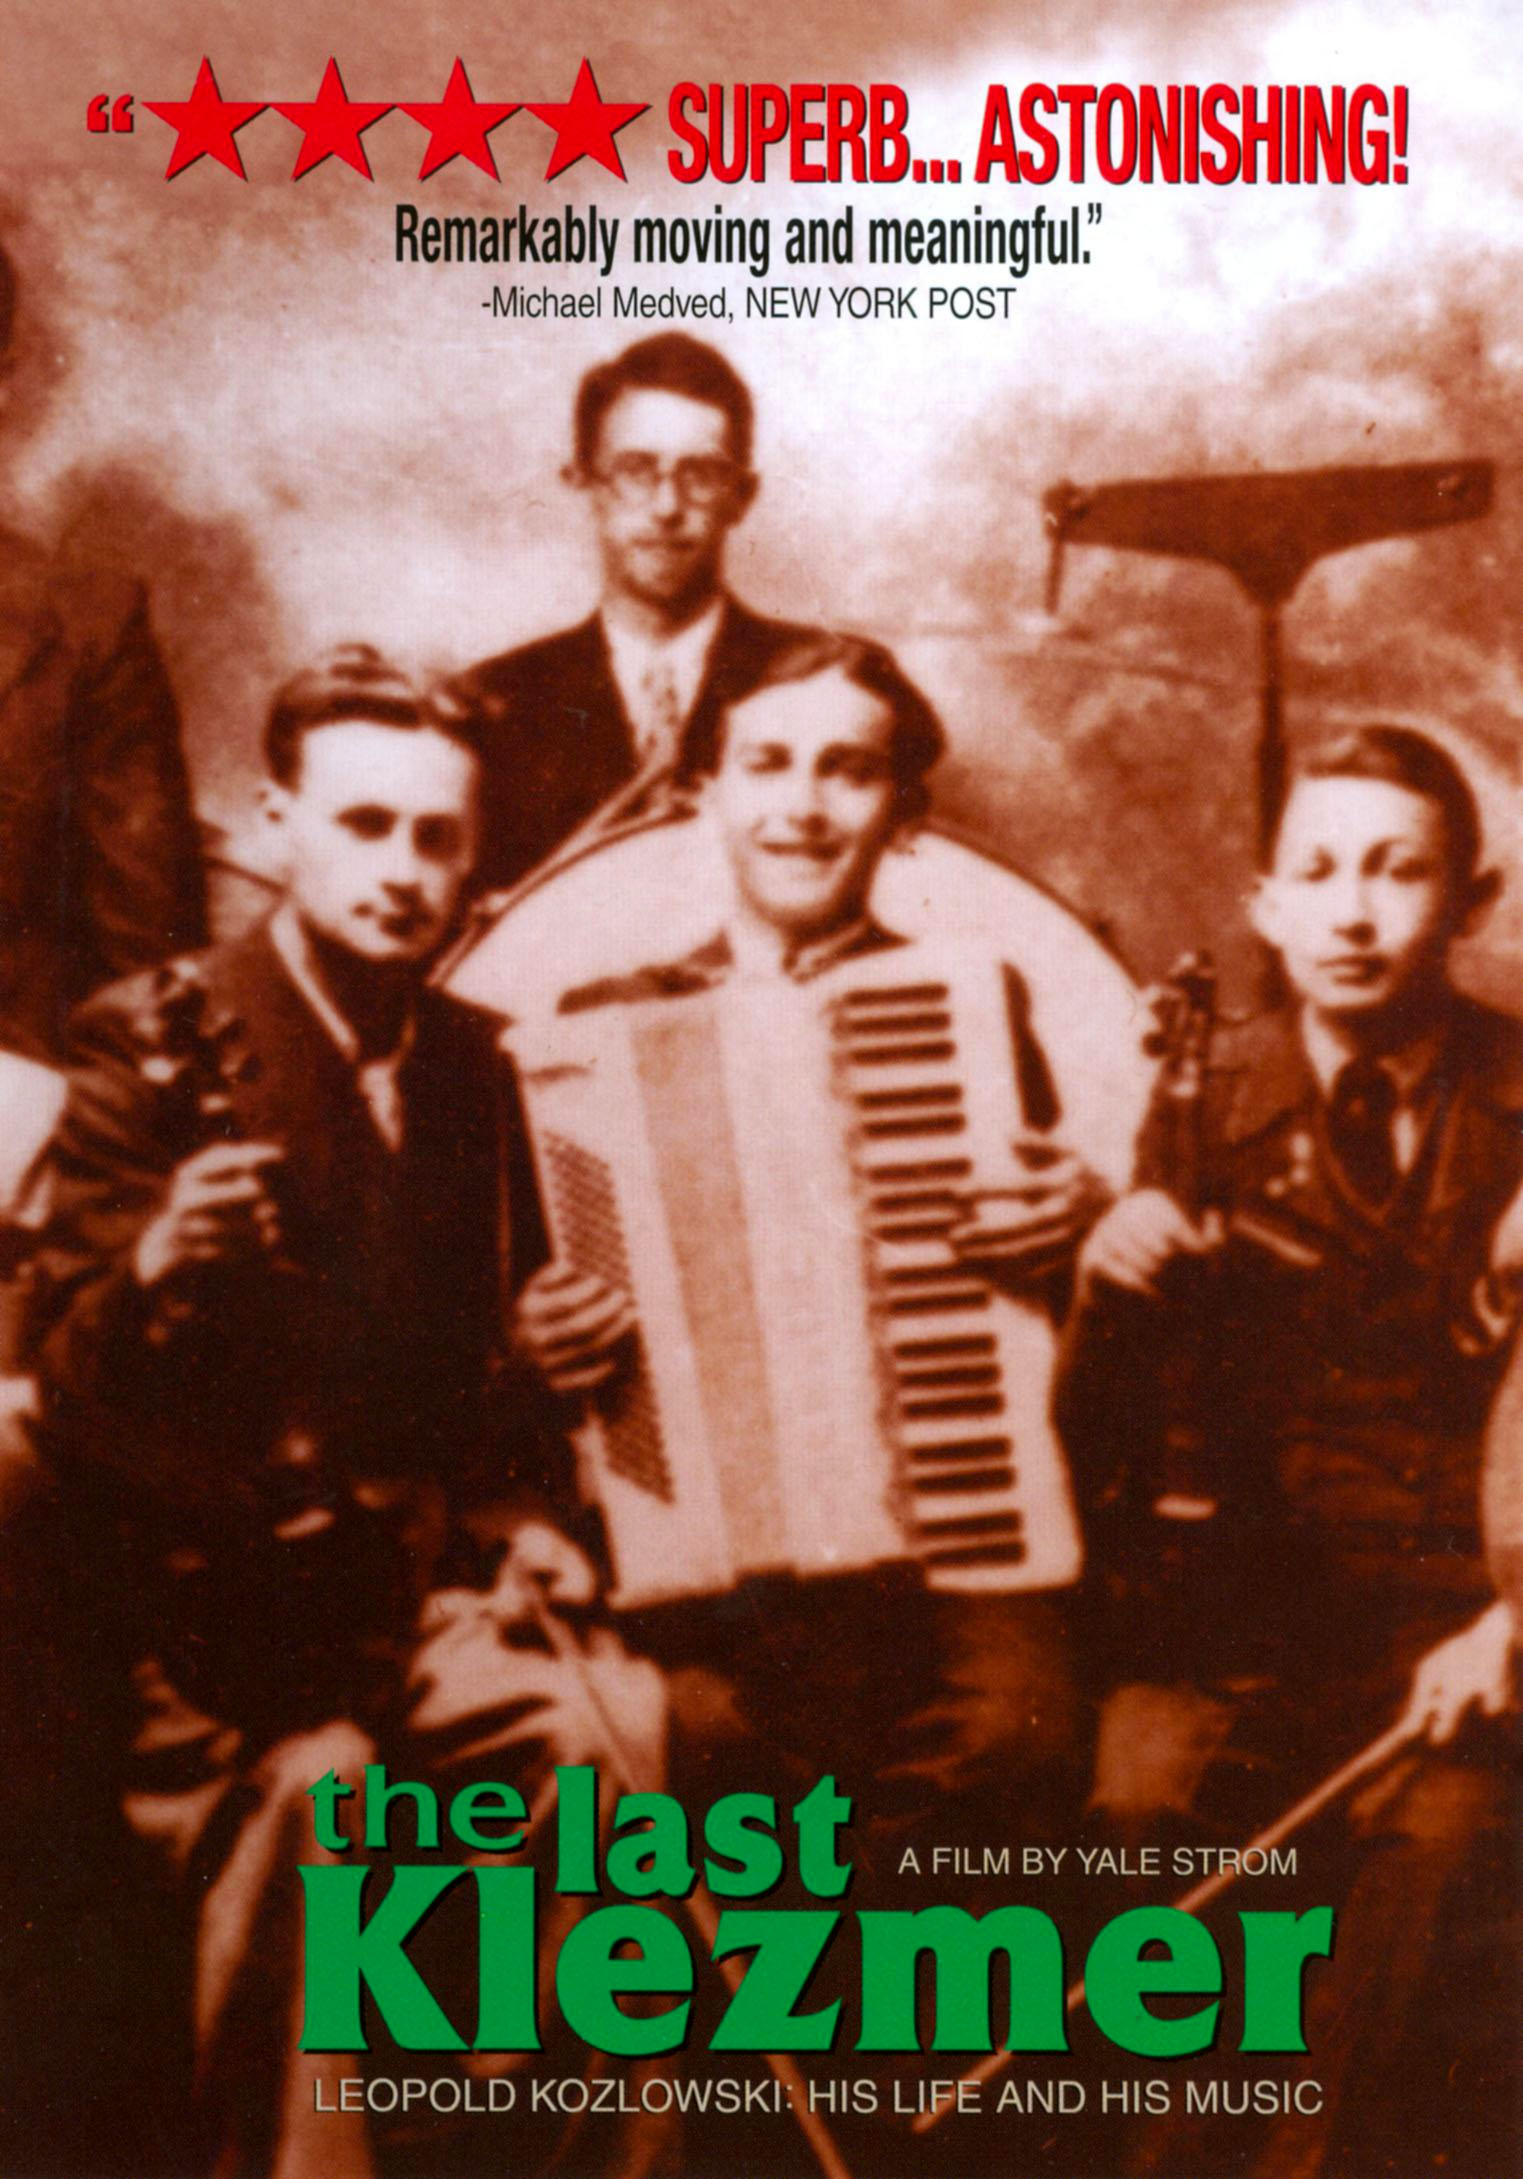 The Last Klezmer: Leopold Kozlowski - His Life and Music